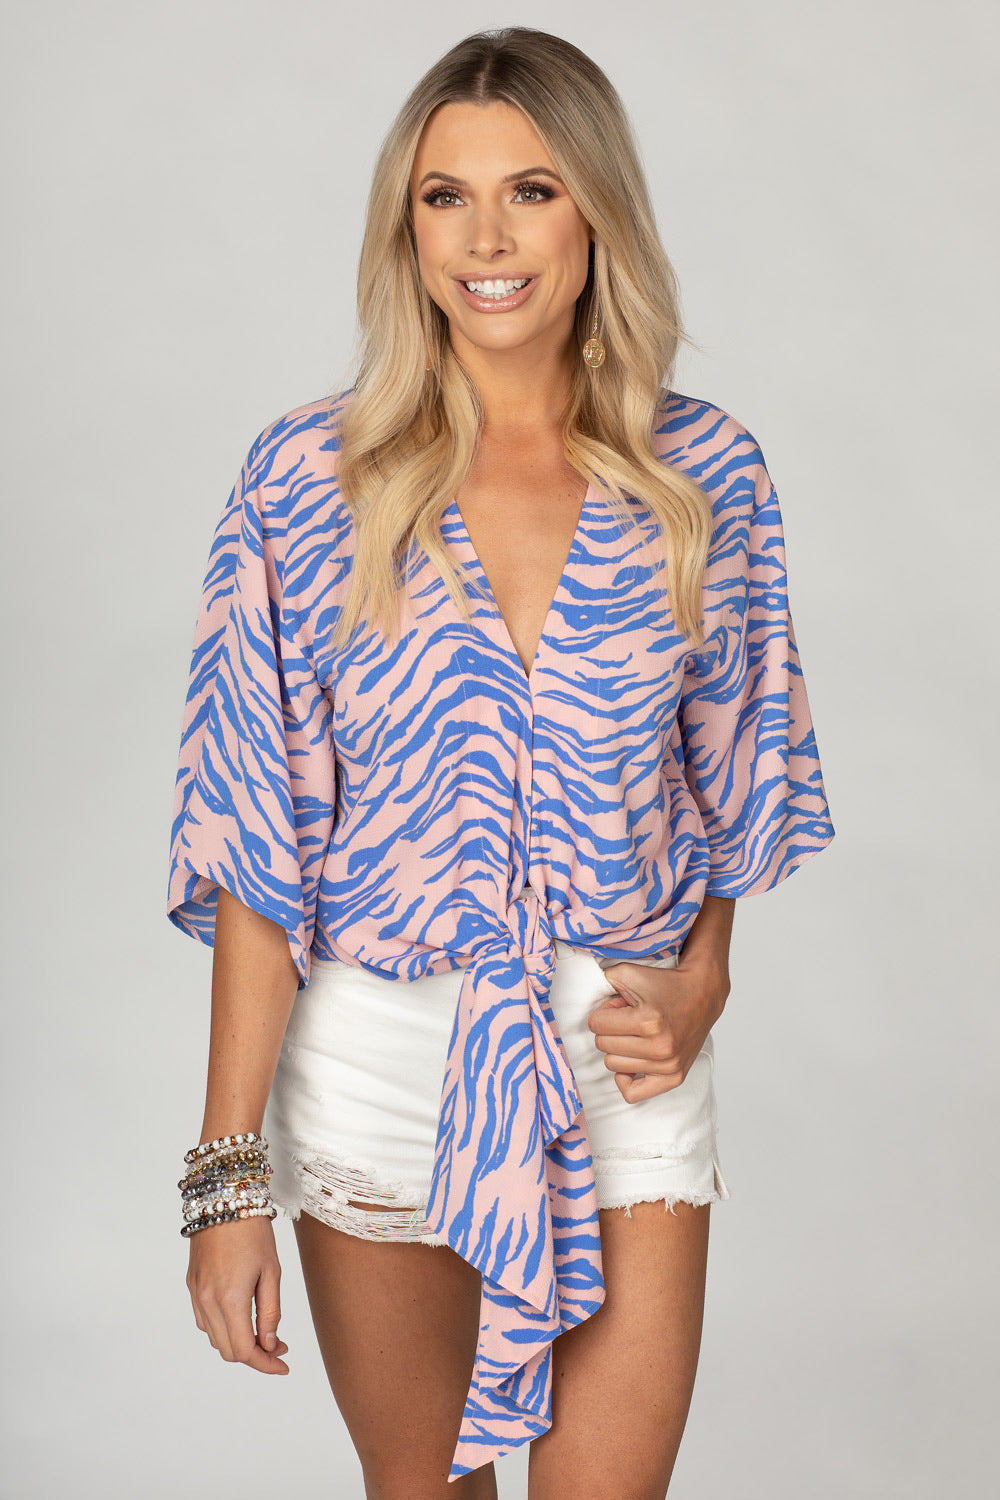 Buddy Love Muse Top in Tiger Blue